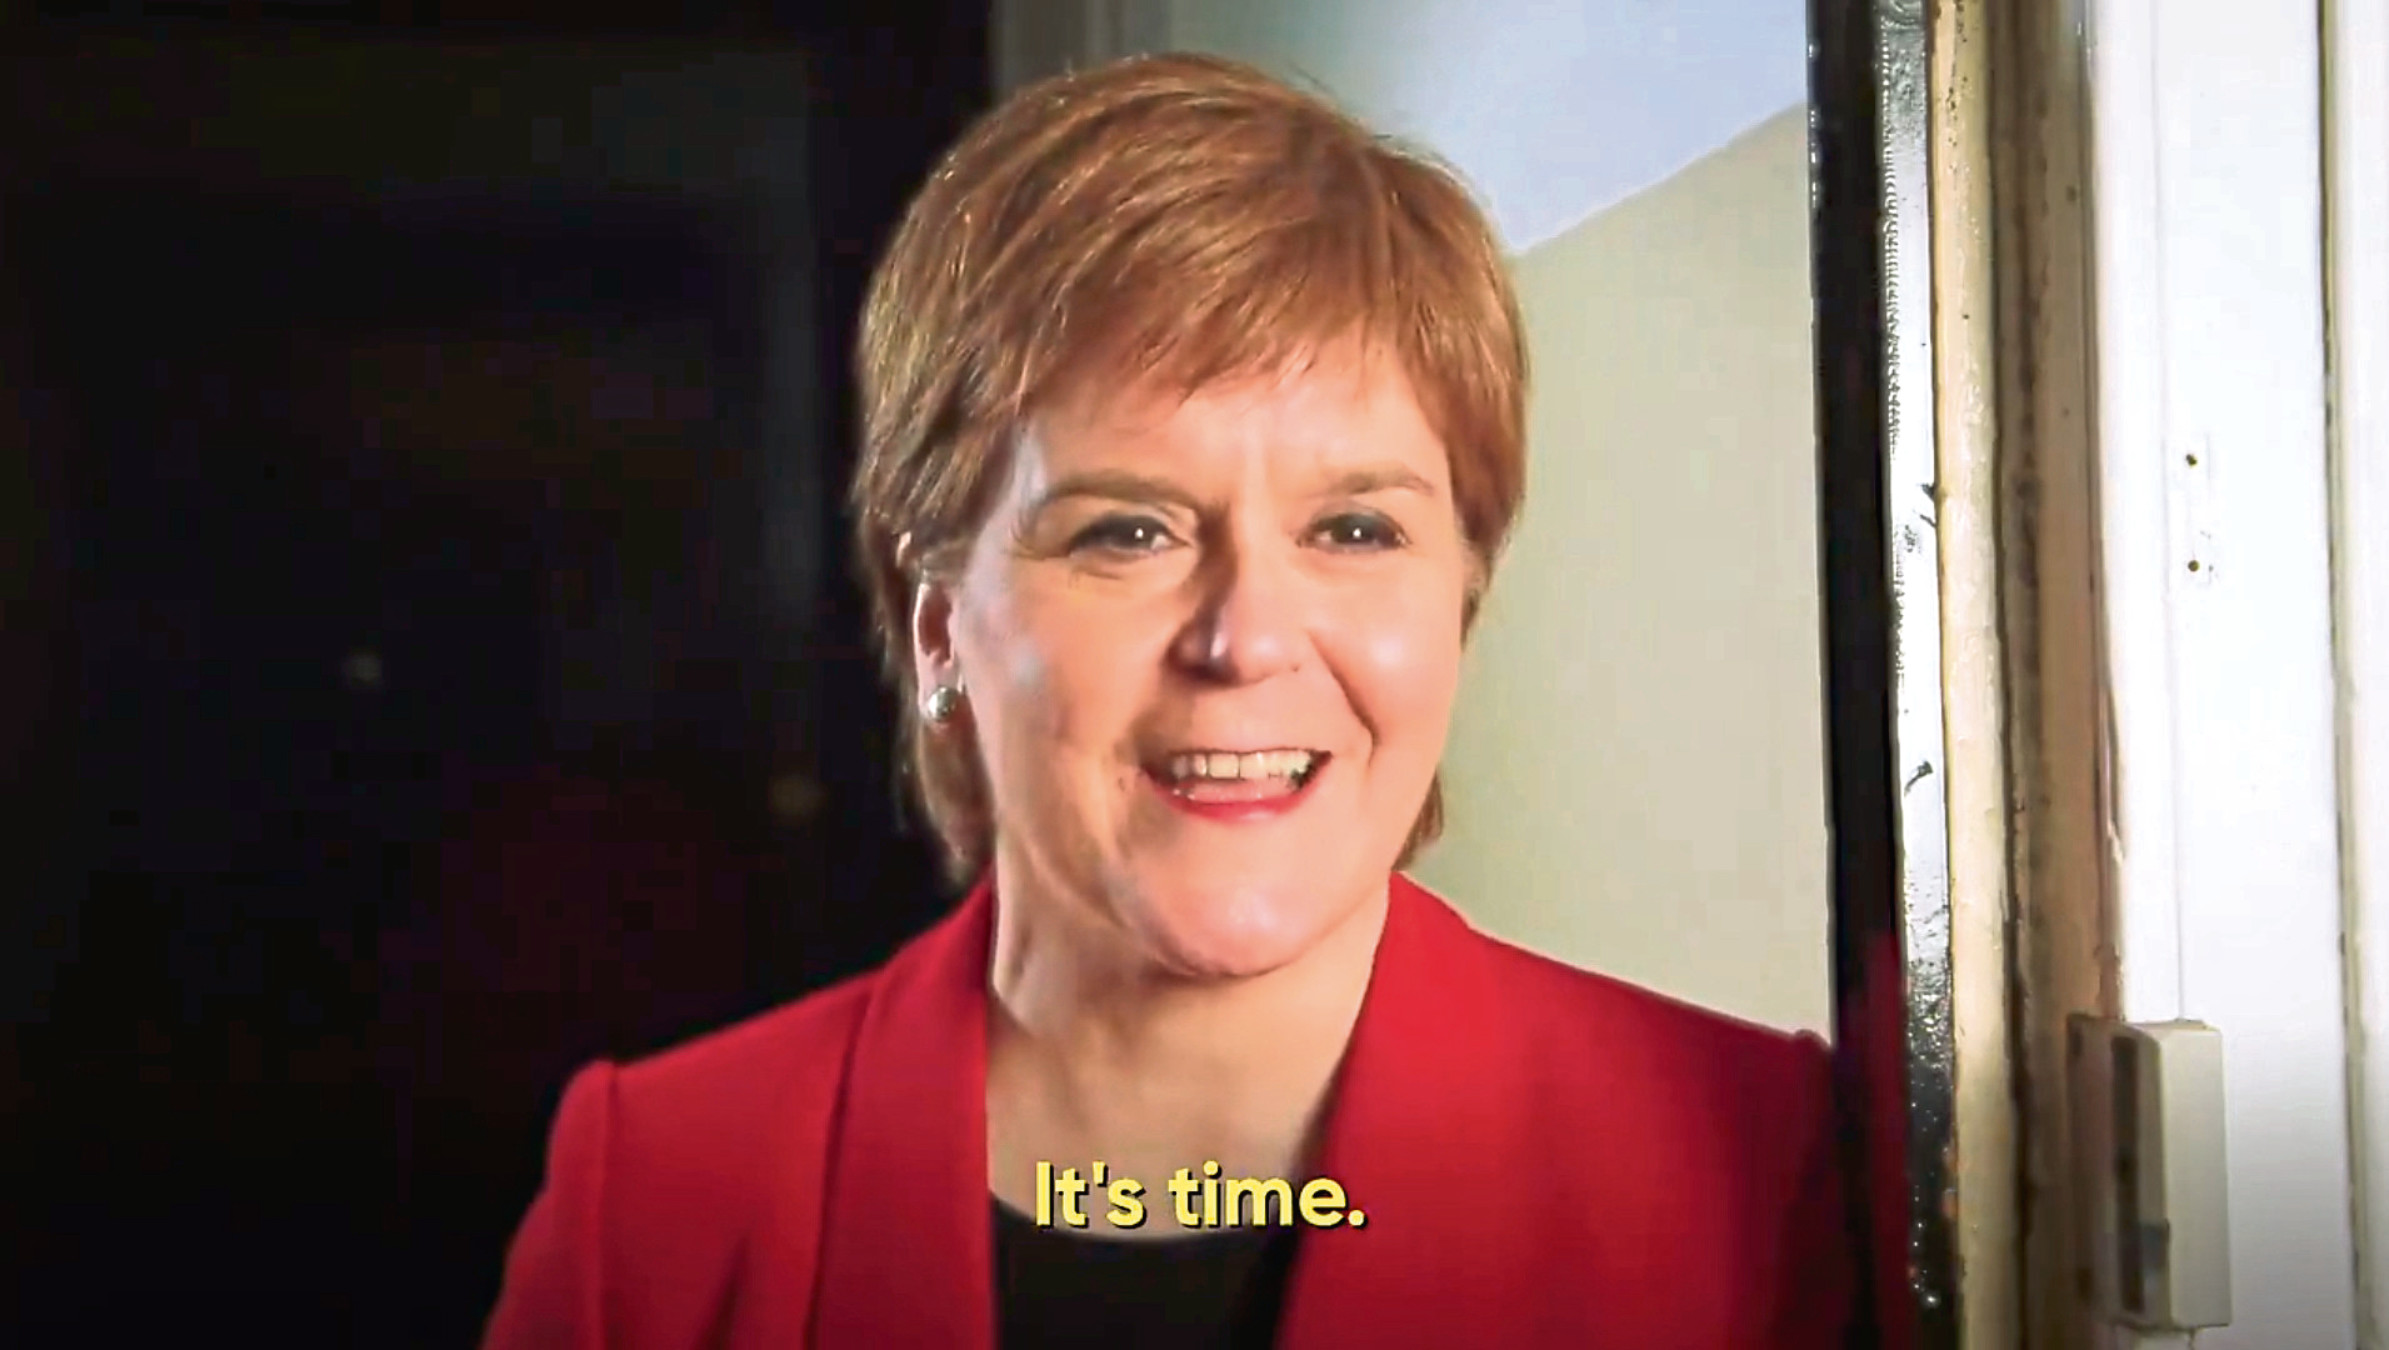 Screenshot from yesscot video featuring First Minister Nicola Sturgeon.